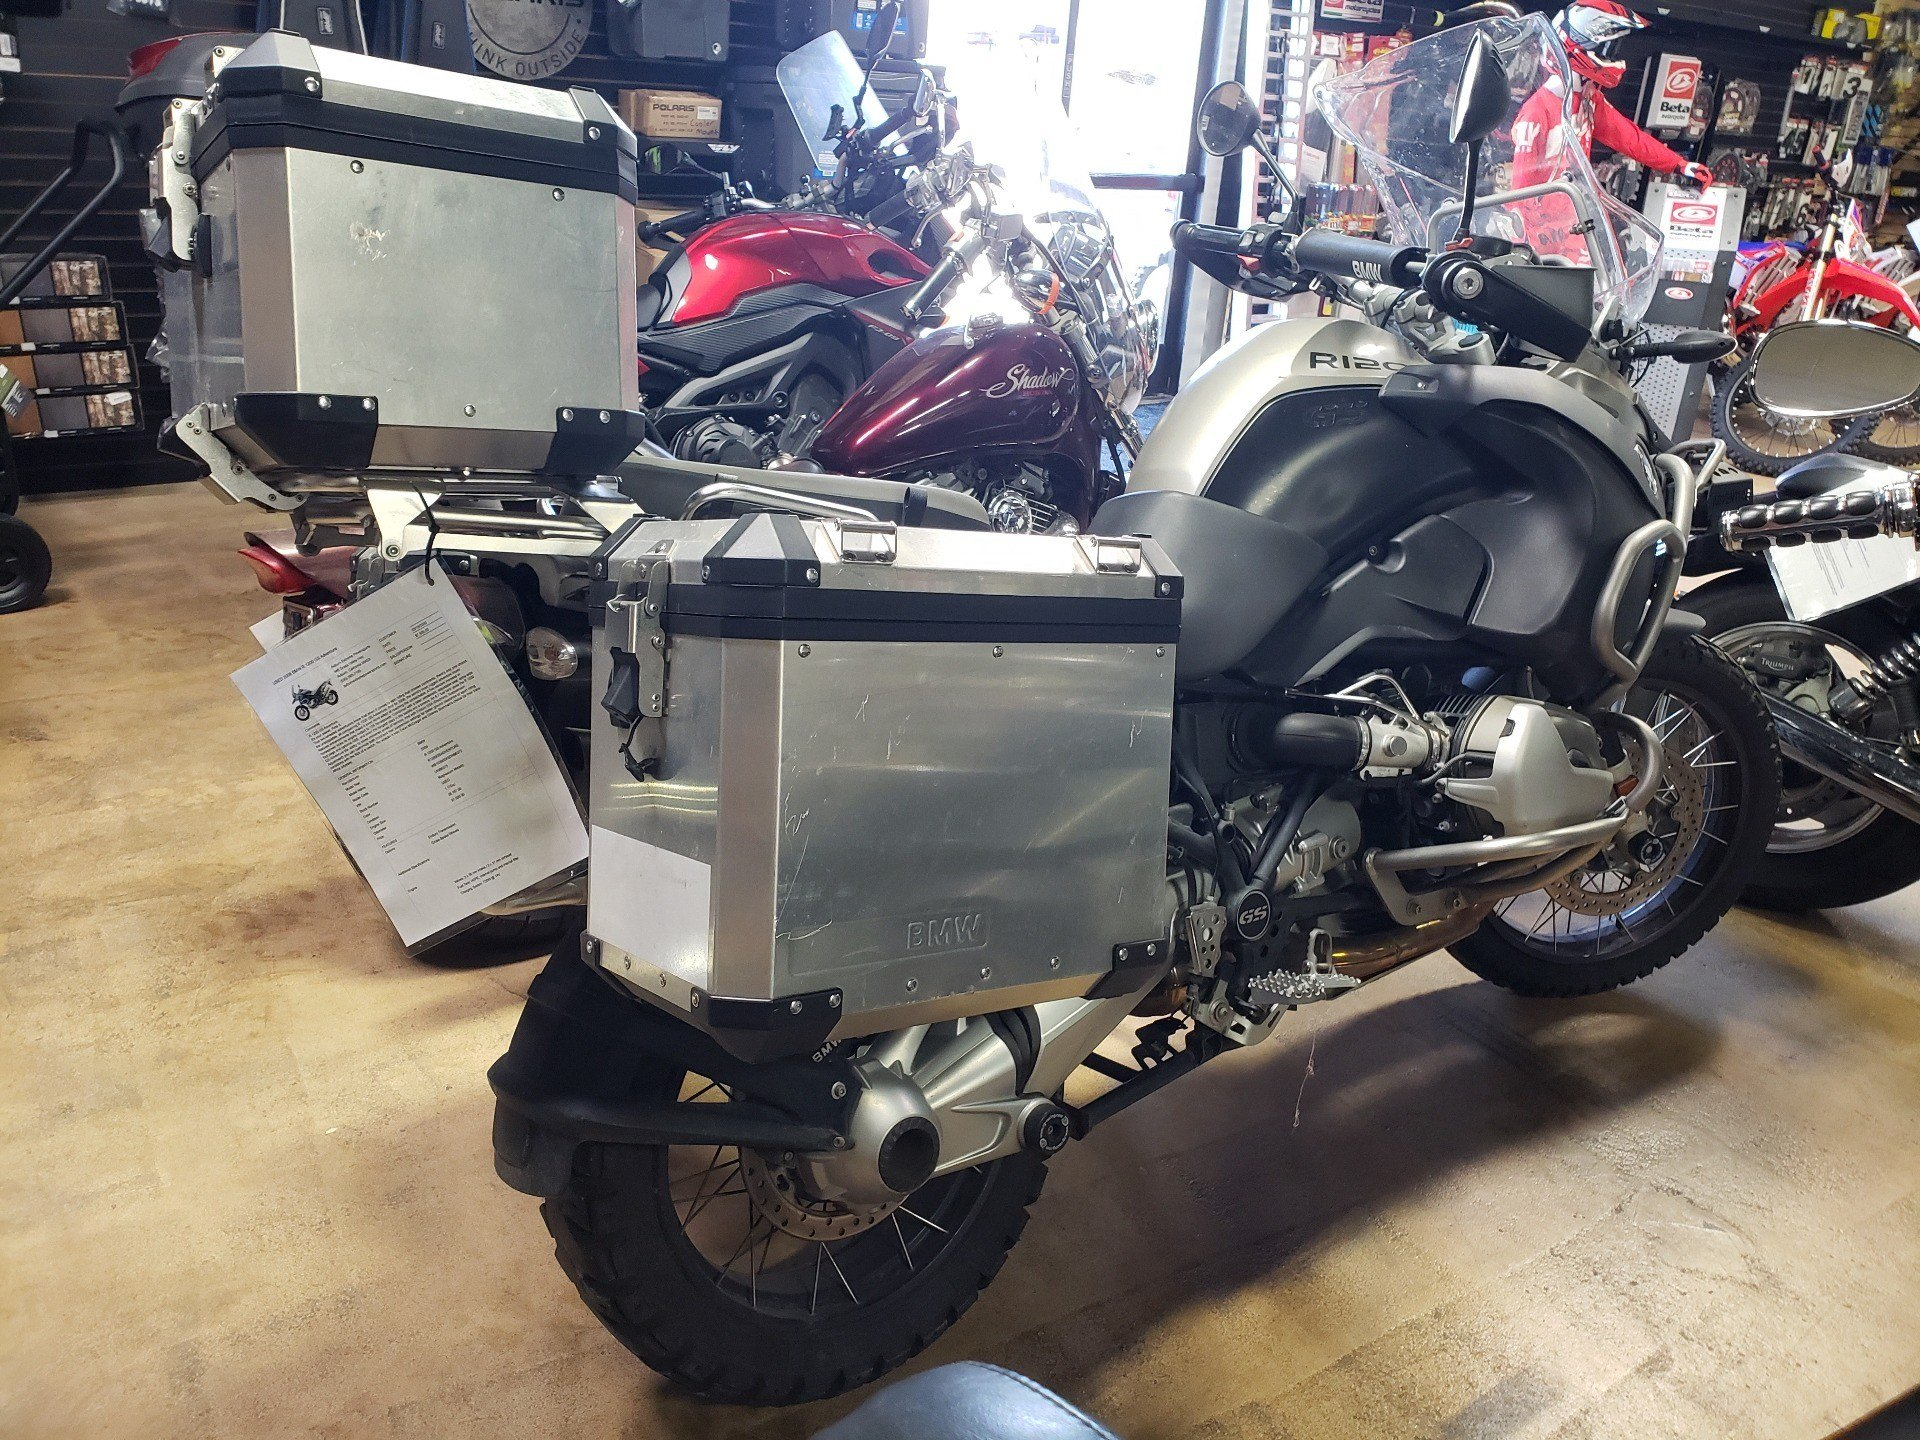 2009 BMW R 1200 GS Adventure in Auburn, California - Photo 2